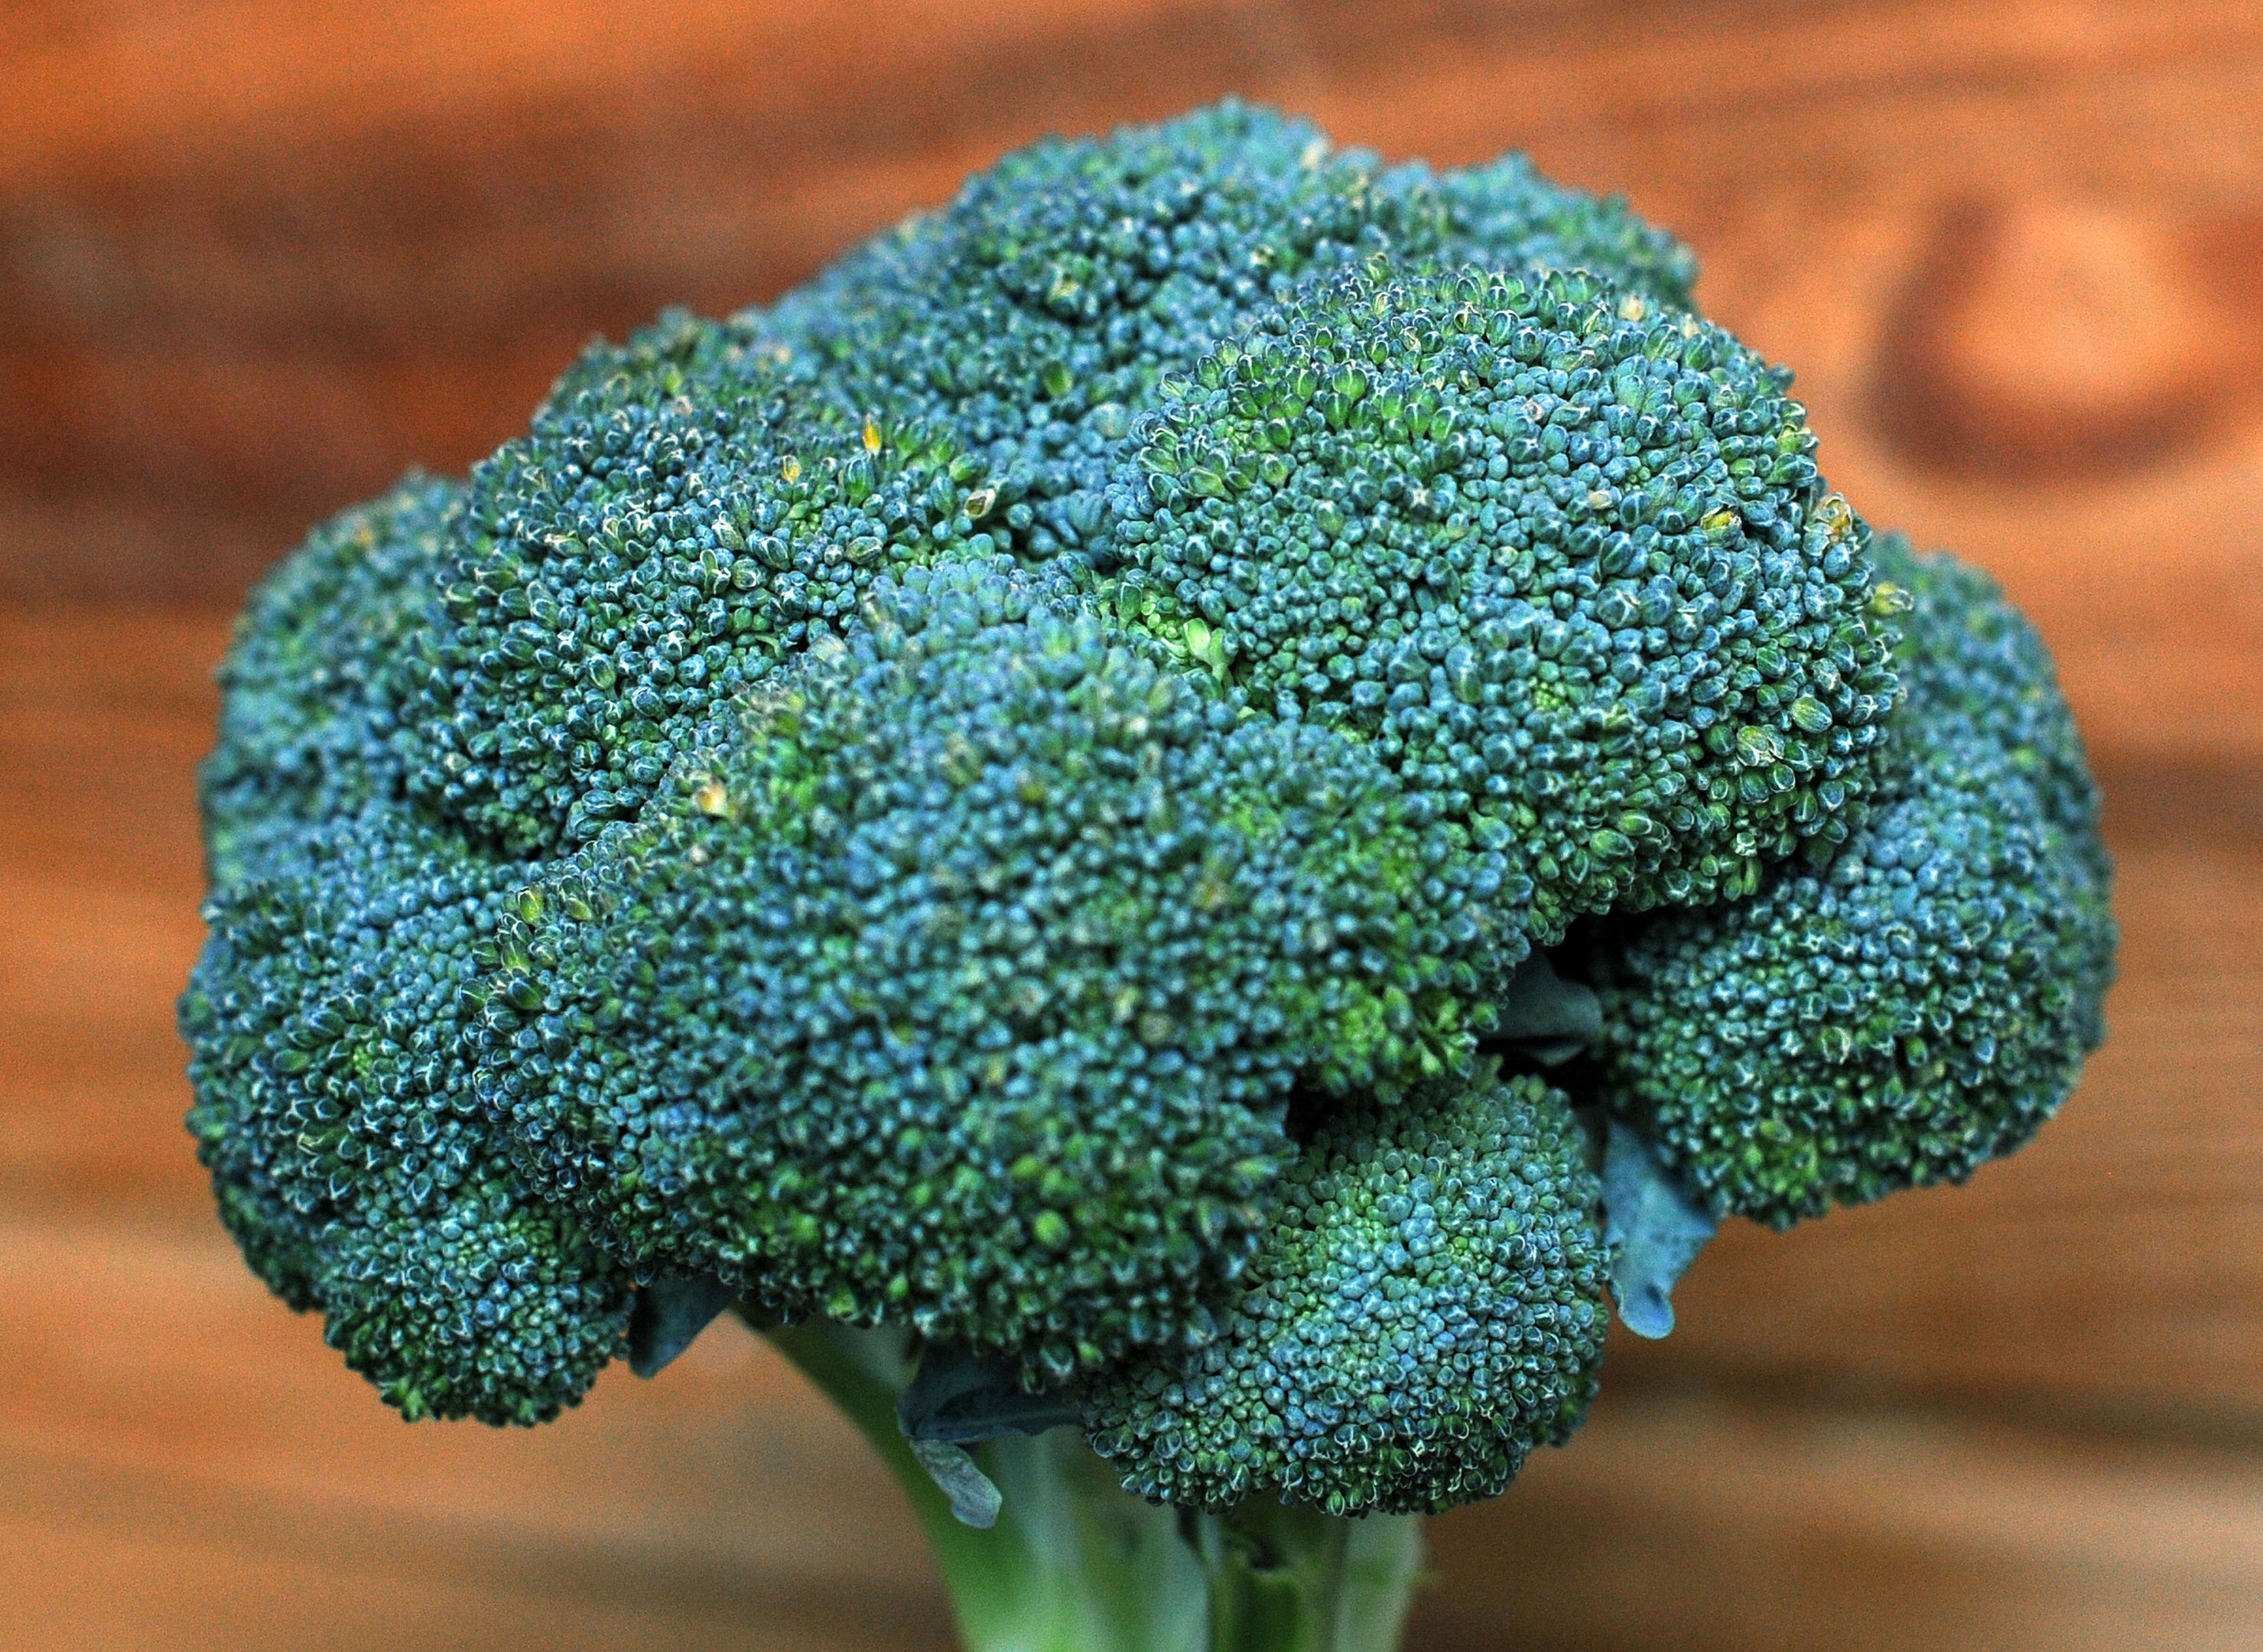 Broccoli has undergone a dramatic image transformation to be crowned Britain's favourite vegetable in a survey from Diabetes UK. (Nick Ansell/PA Wire)